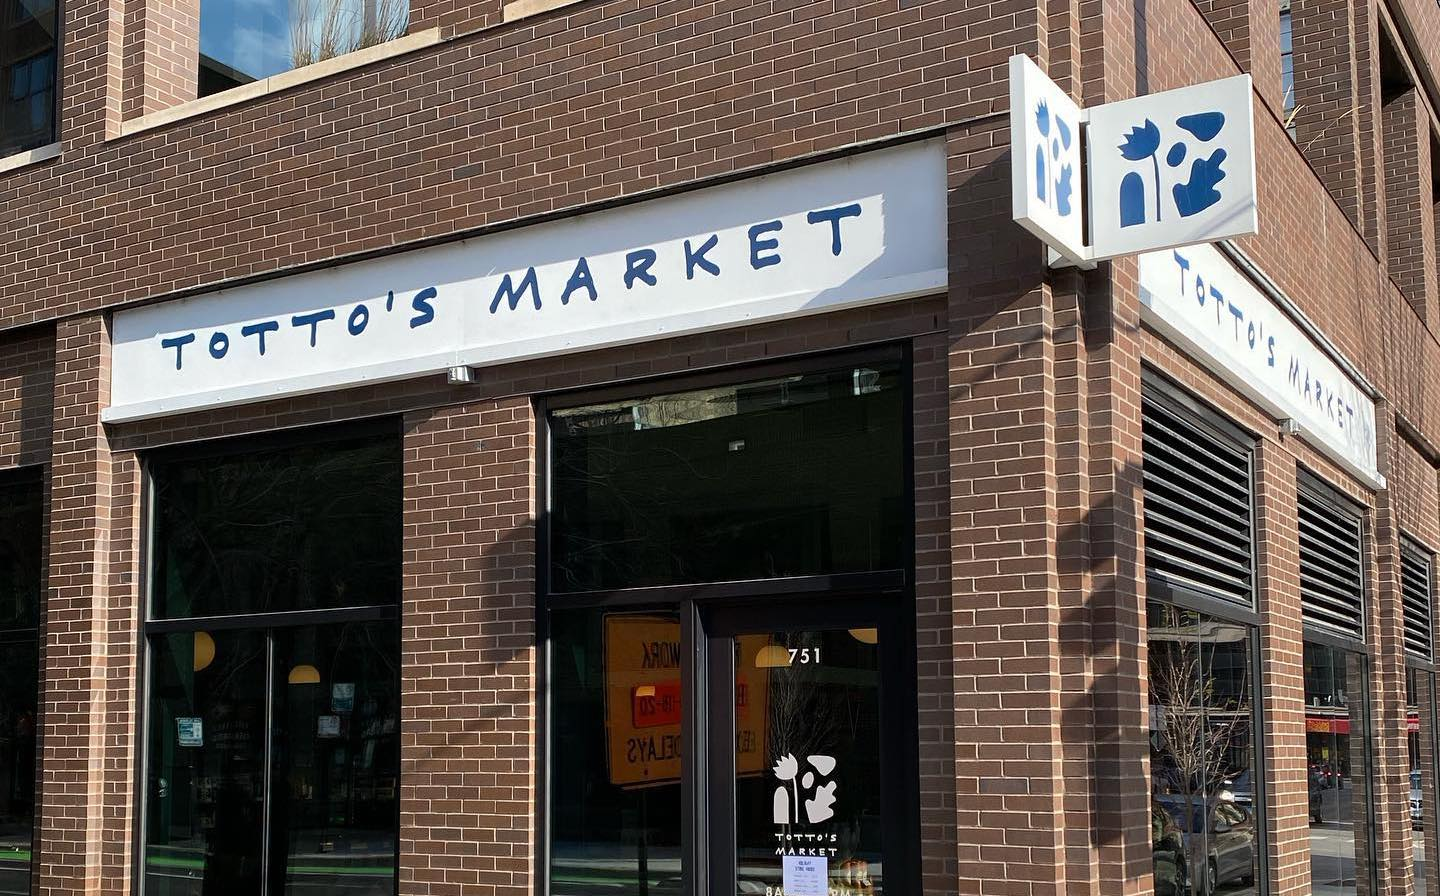 Grab A Gourmet Sandwich And Stock Up The Kitchen At The Wonderfully Unique Totto's Market In Illinois